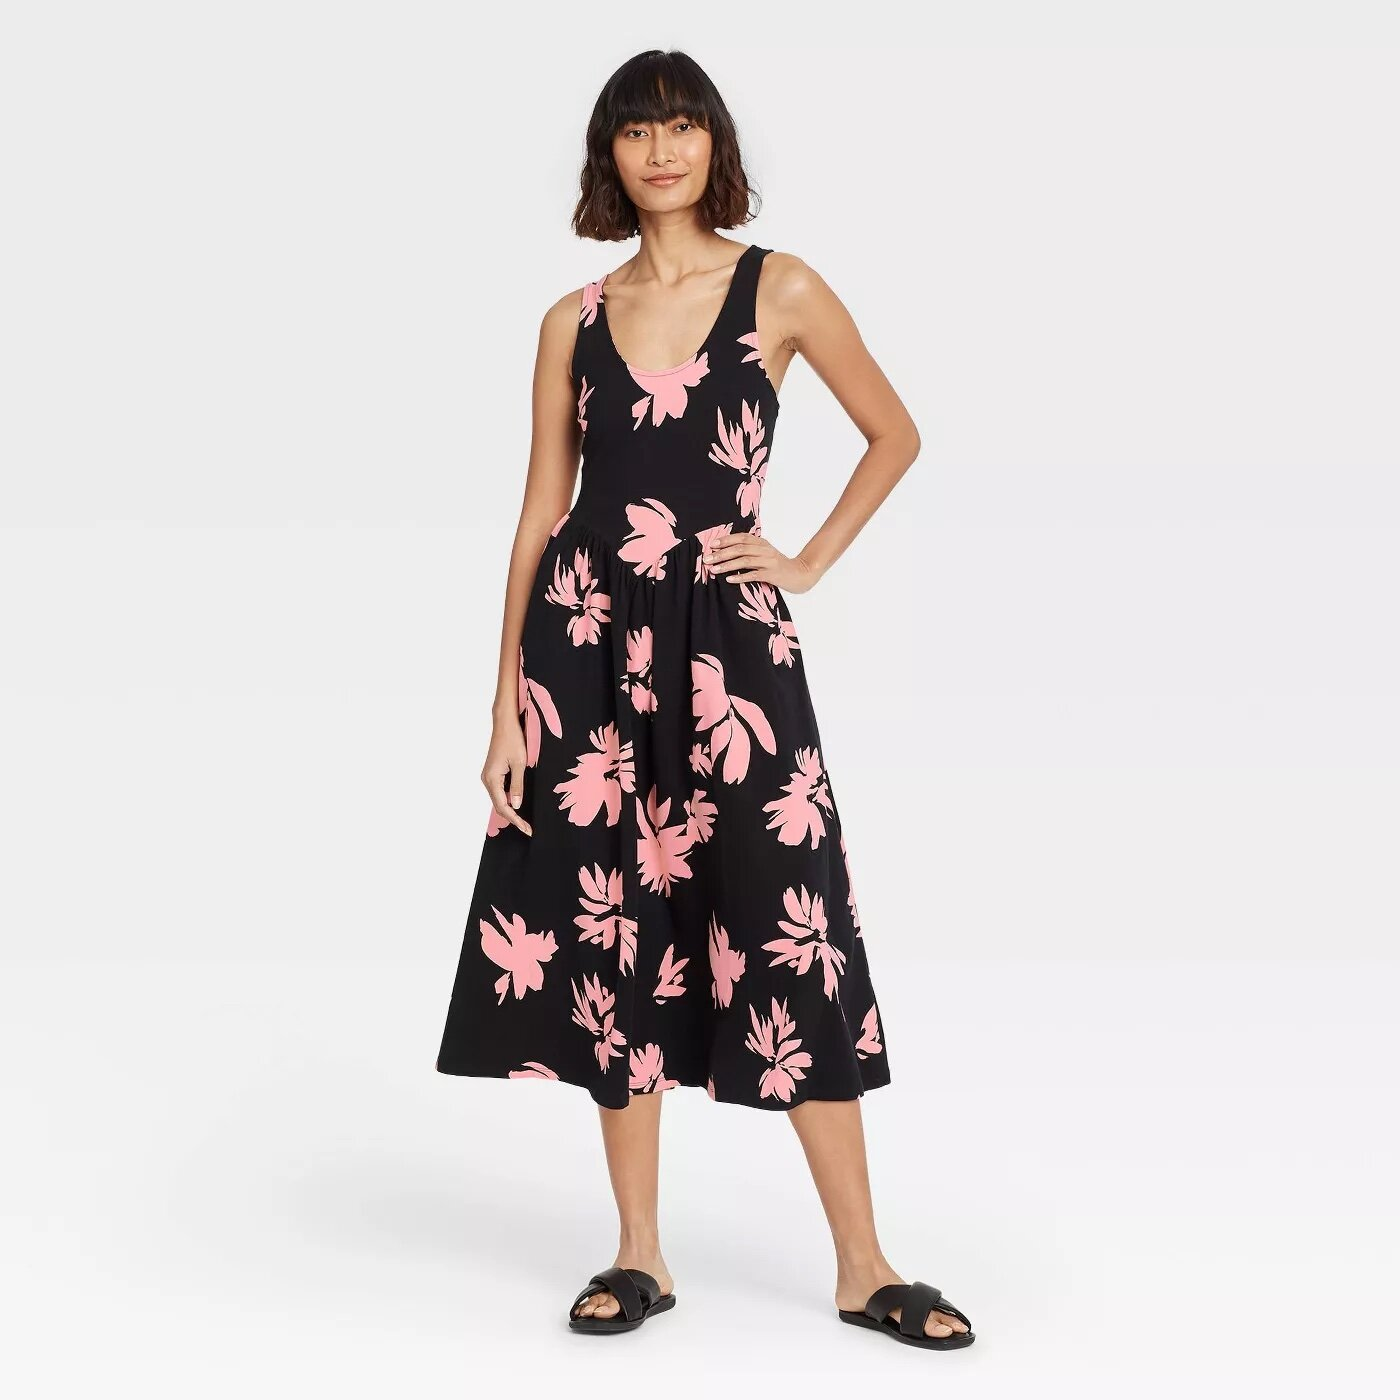 13 Amazing Spring Floral Dresses From Target